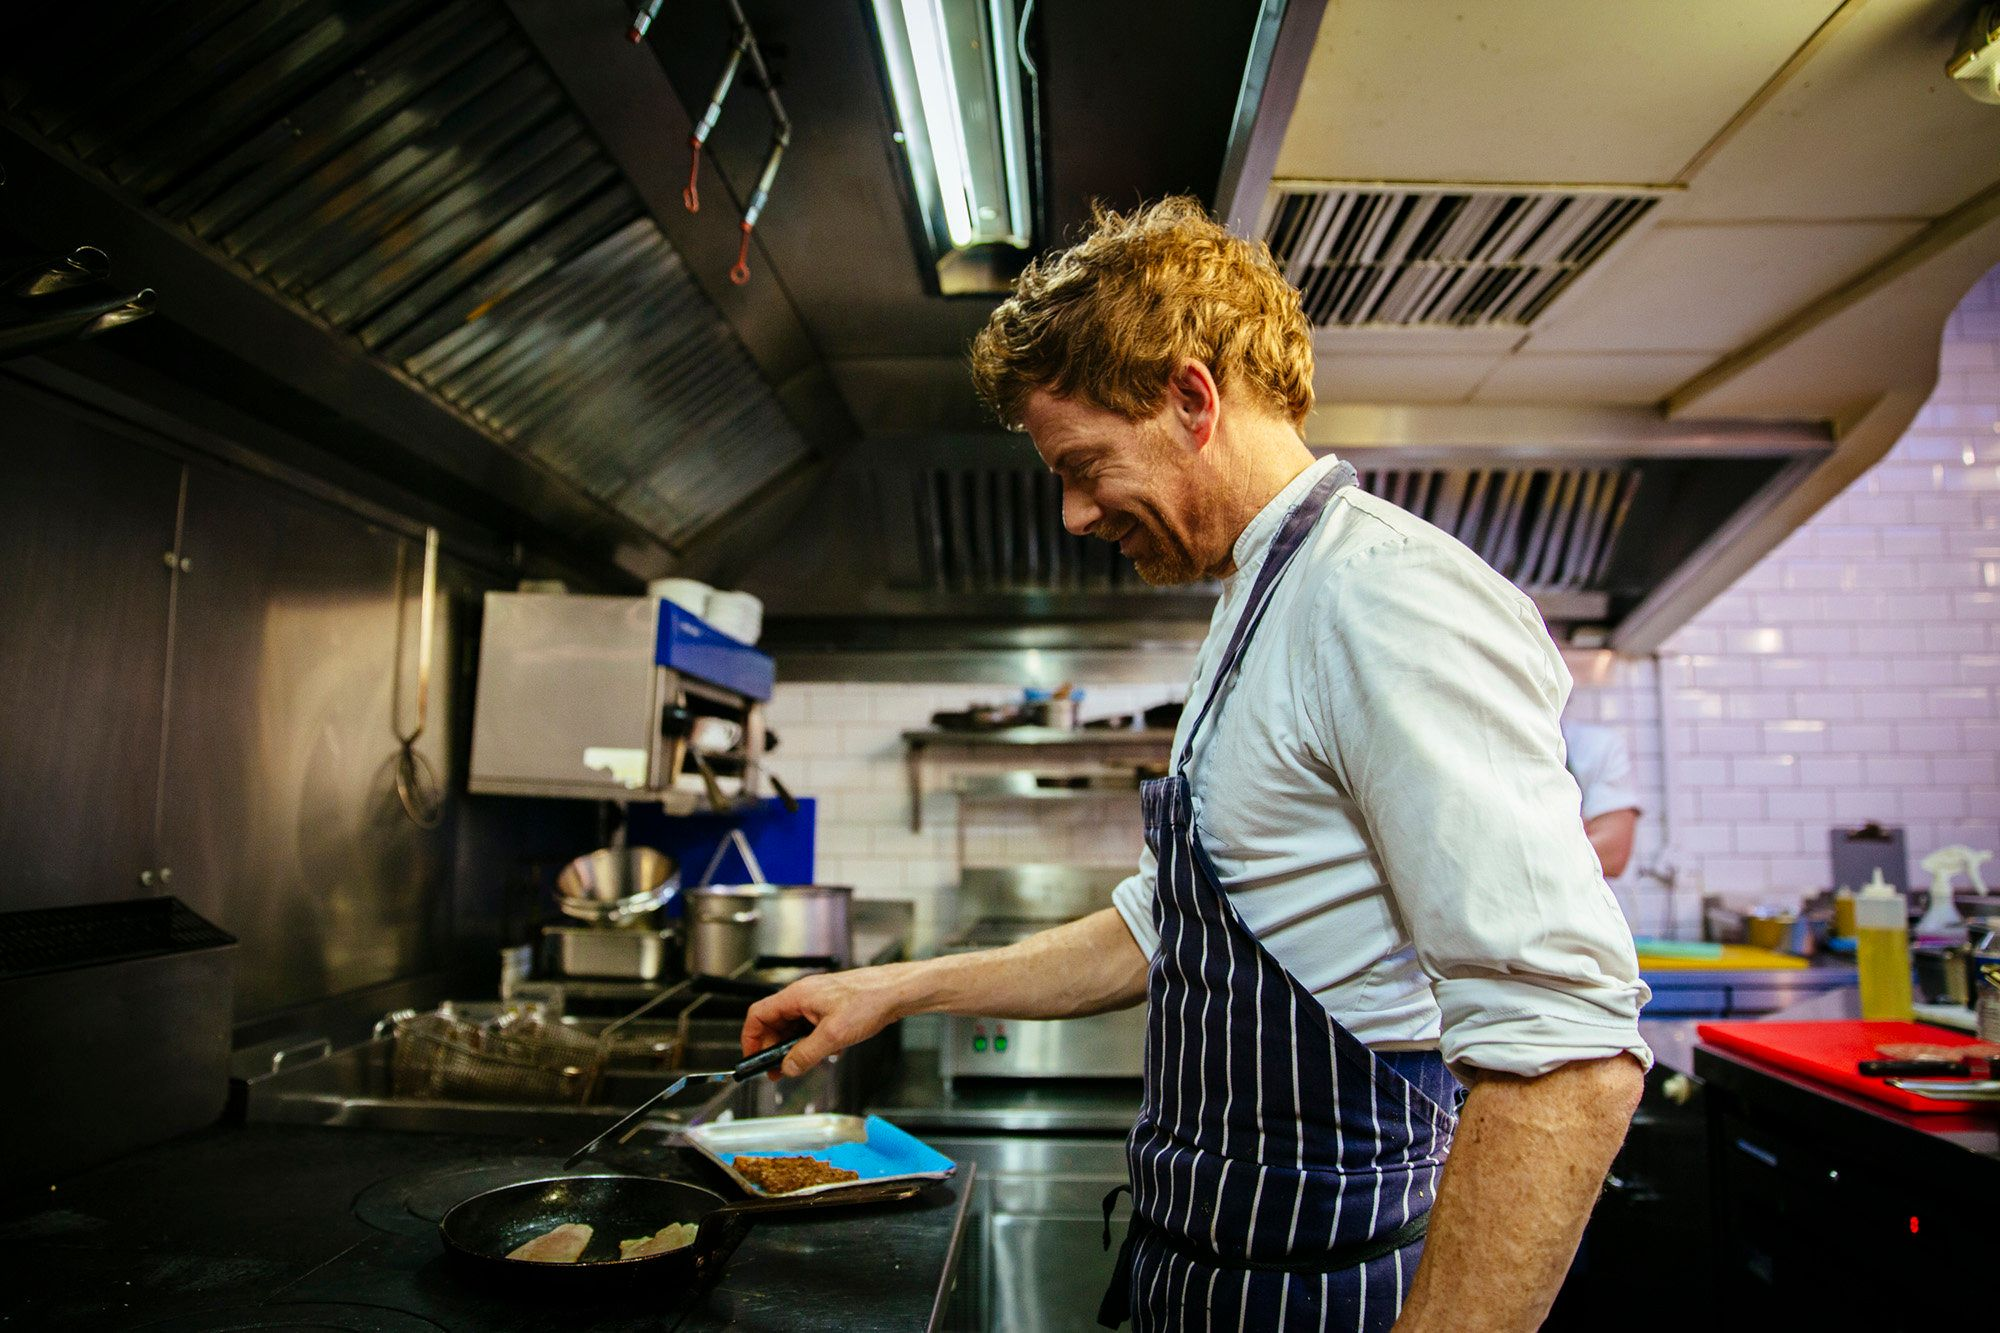 Award-Winning Chef Tom Aikens On How To Eat Fish